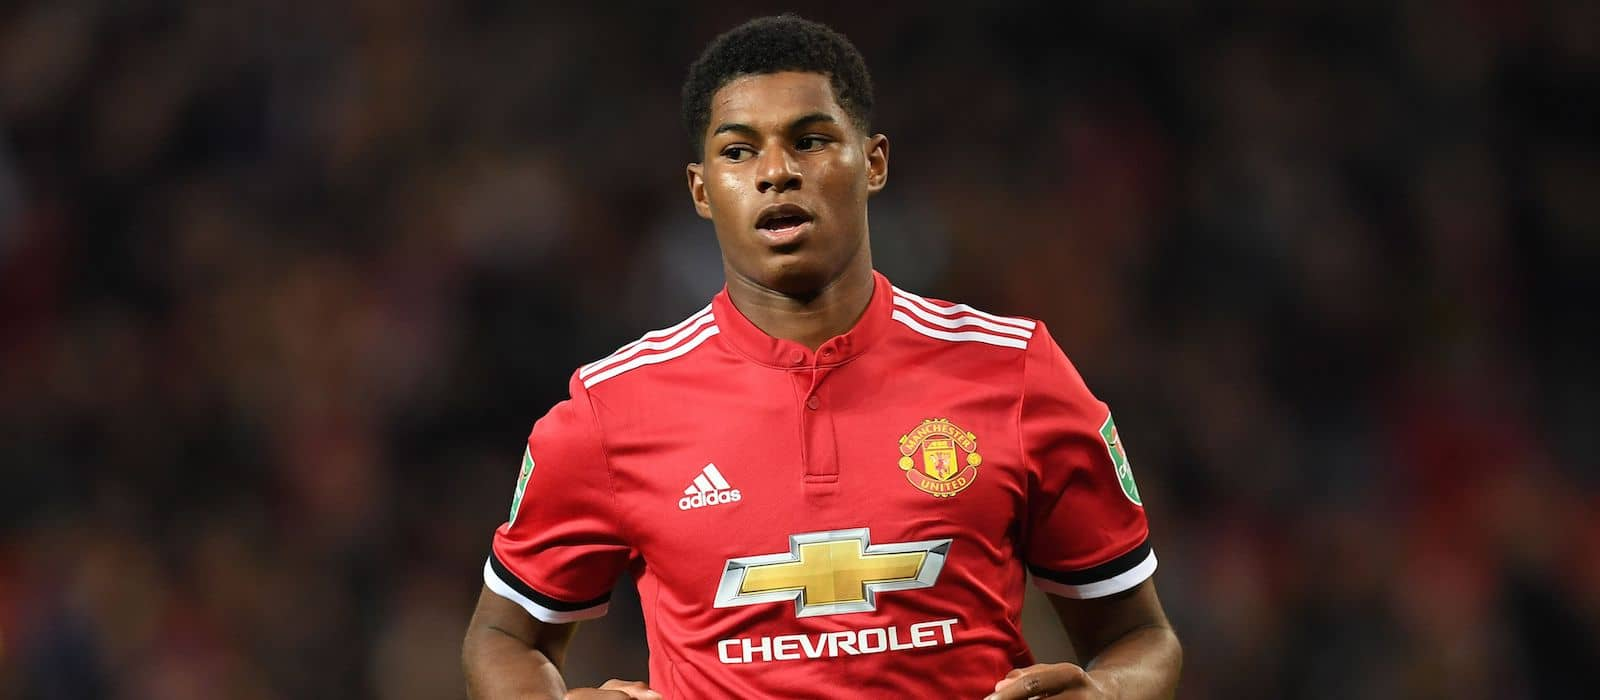 Rio Ferdinand: Marcus Rashford is in the right environment at Manchester United